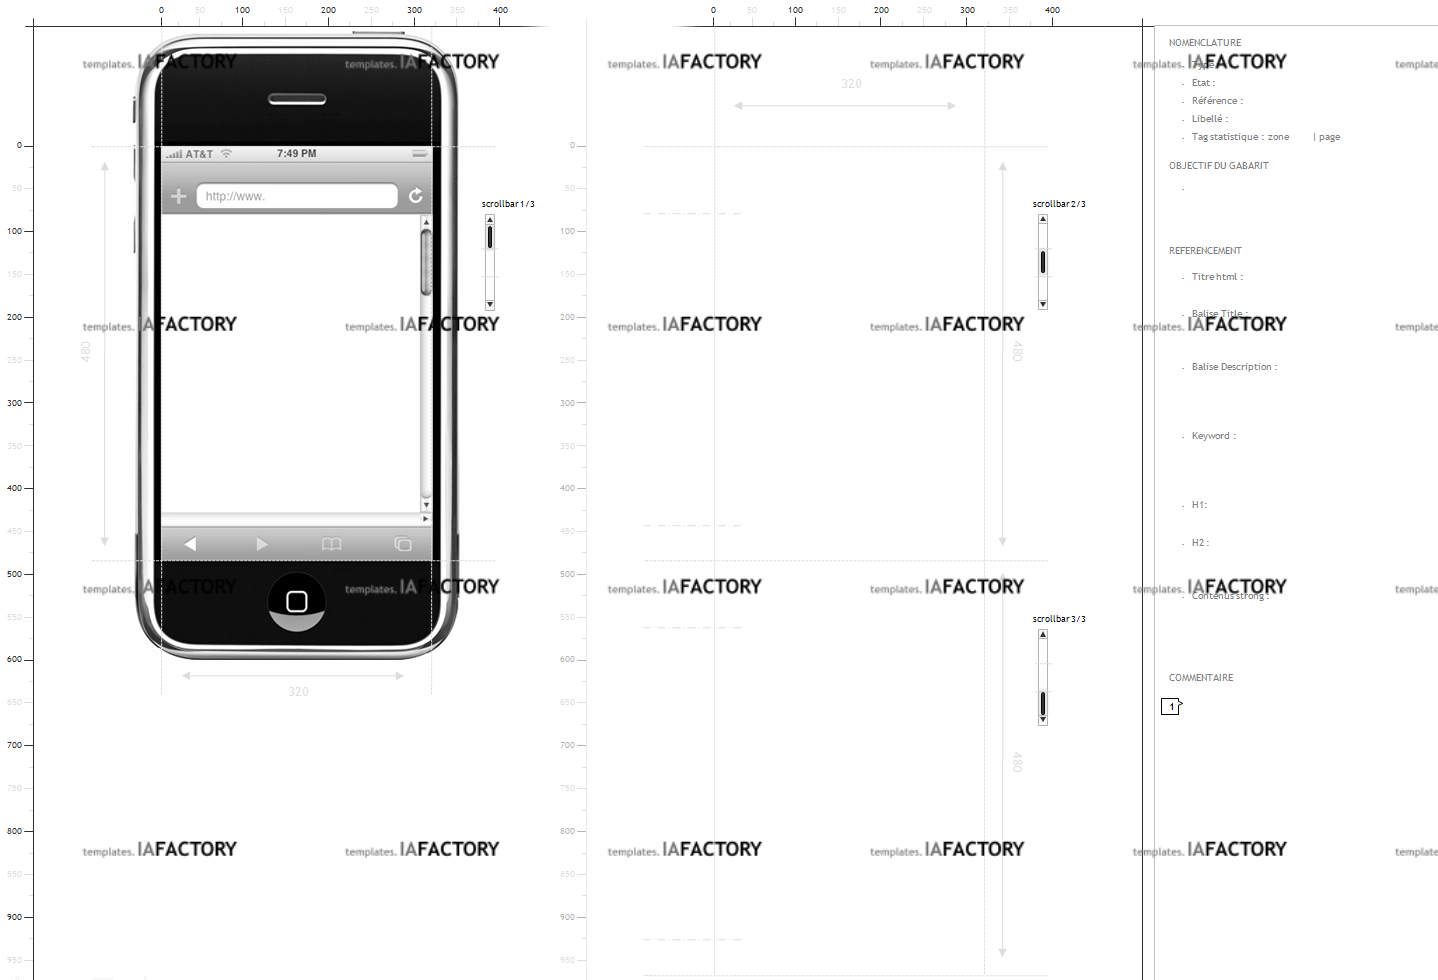 storyboard - iphone (http://templates.iafactory.fr) fichier .ppt